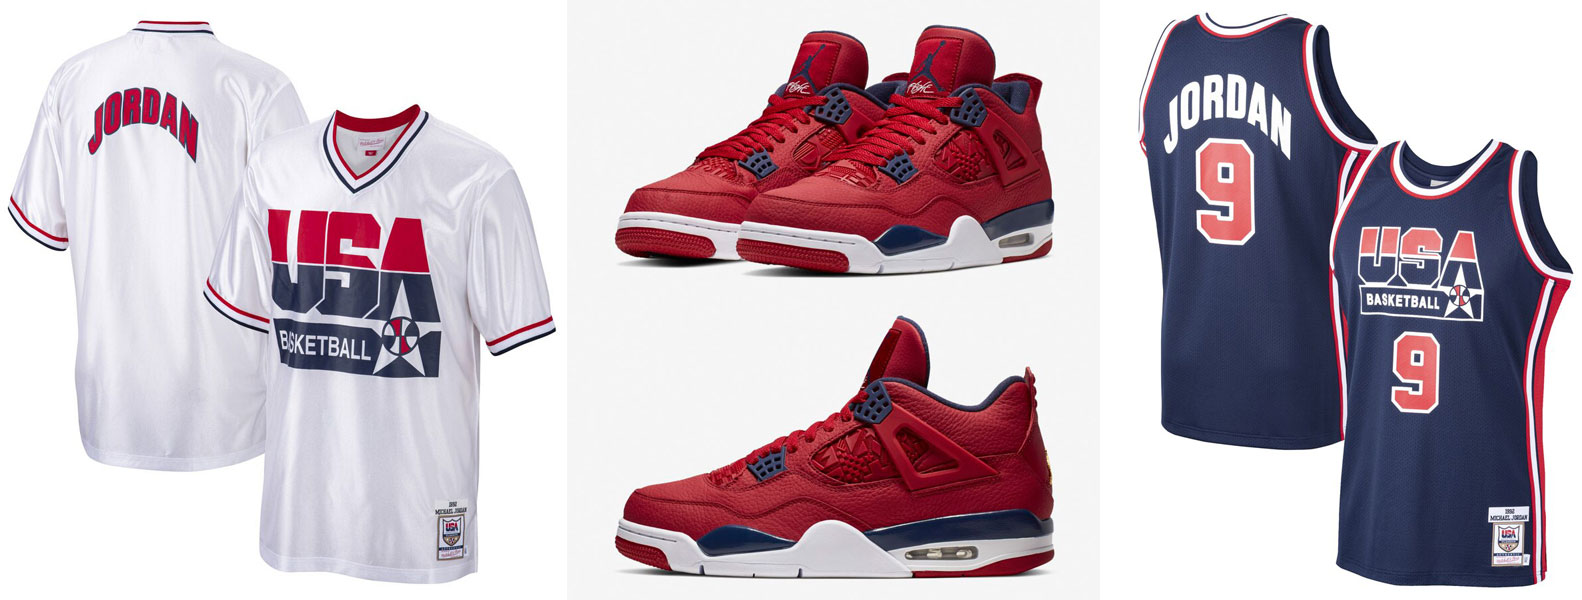 air-jordan-4-fiba-michael-jordan-dream-team-92-usa-clothing